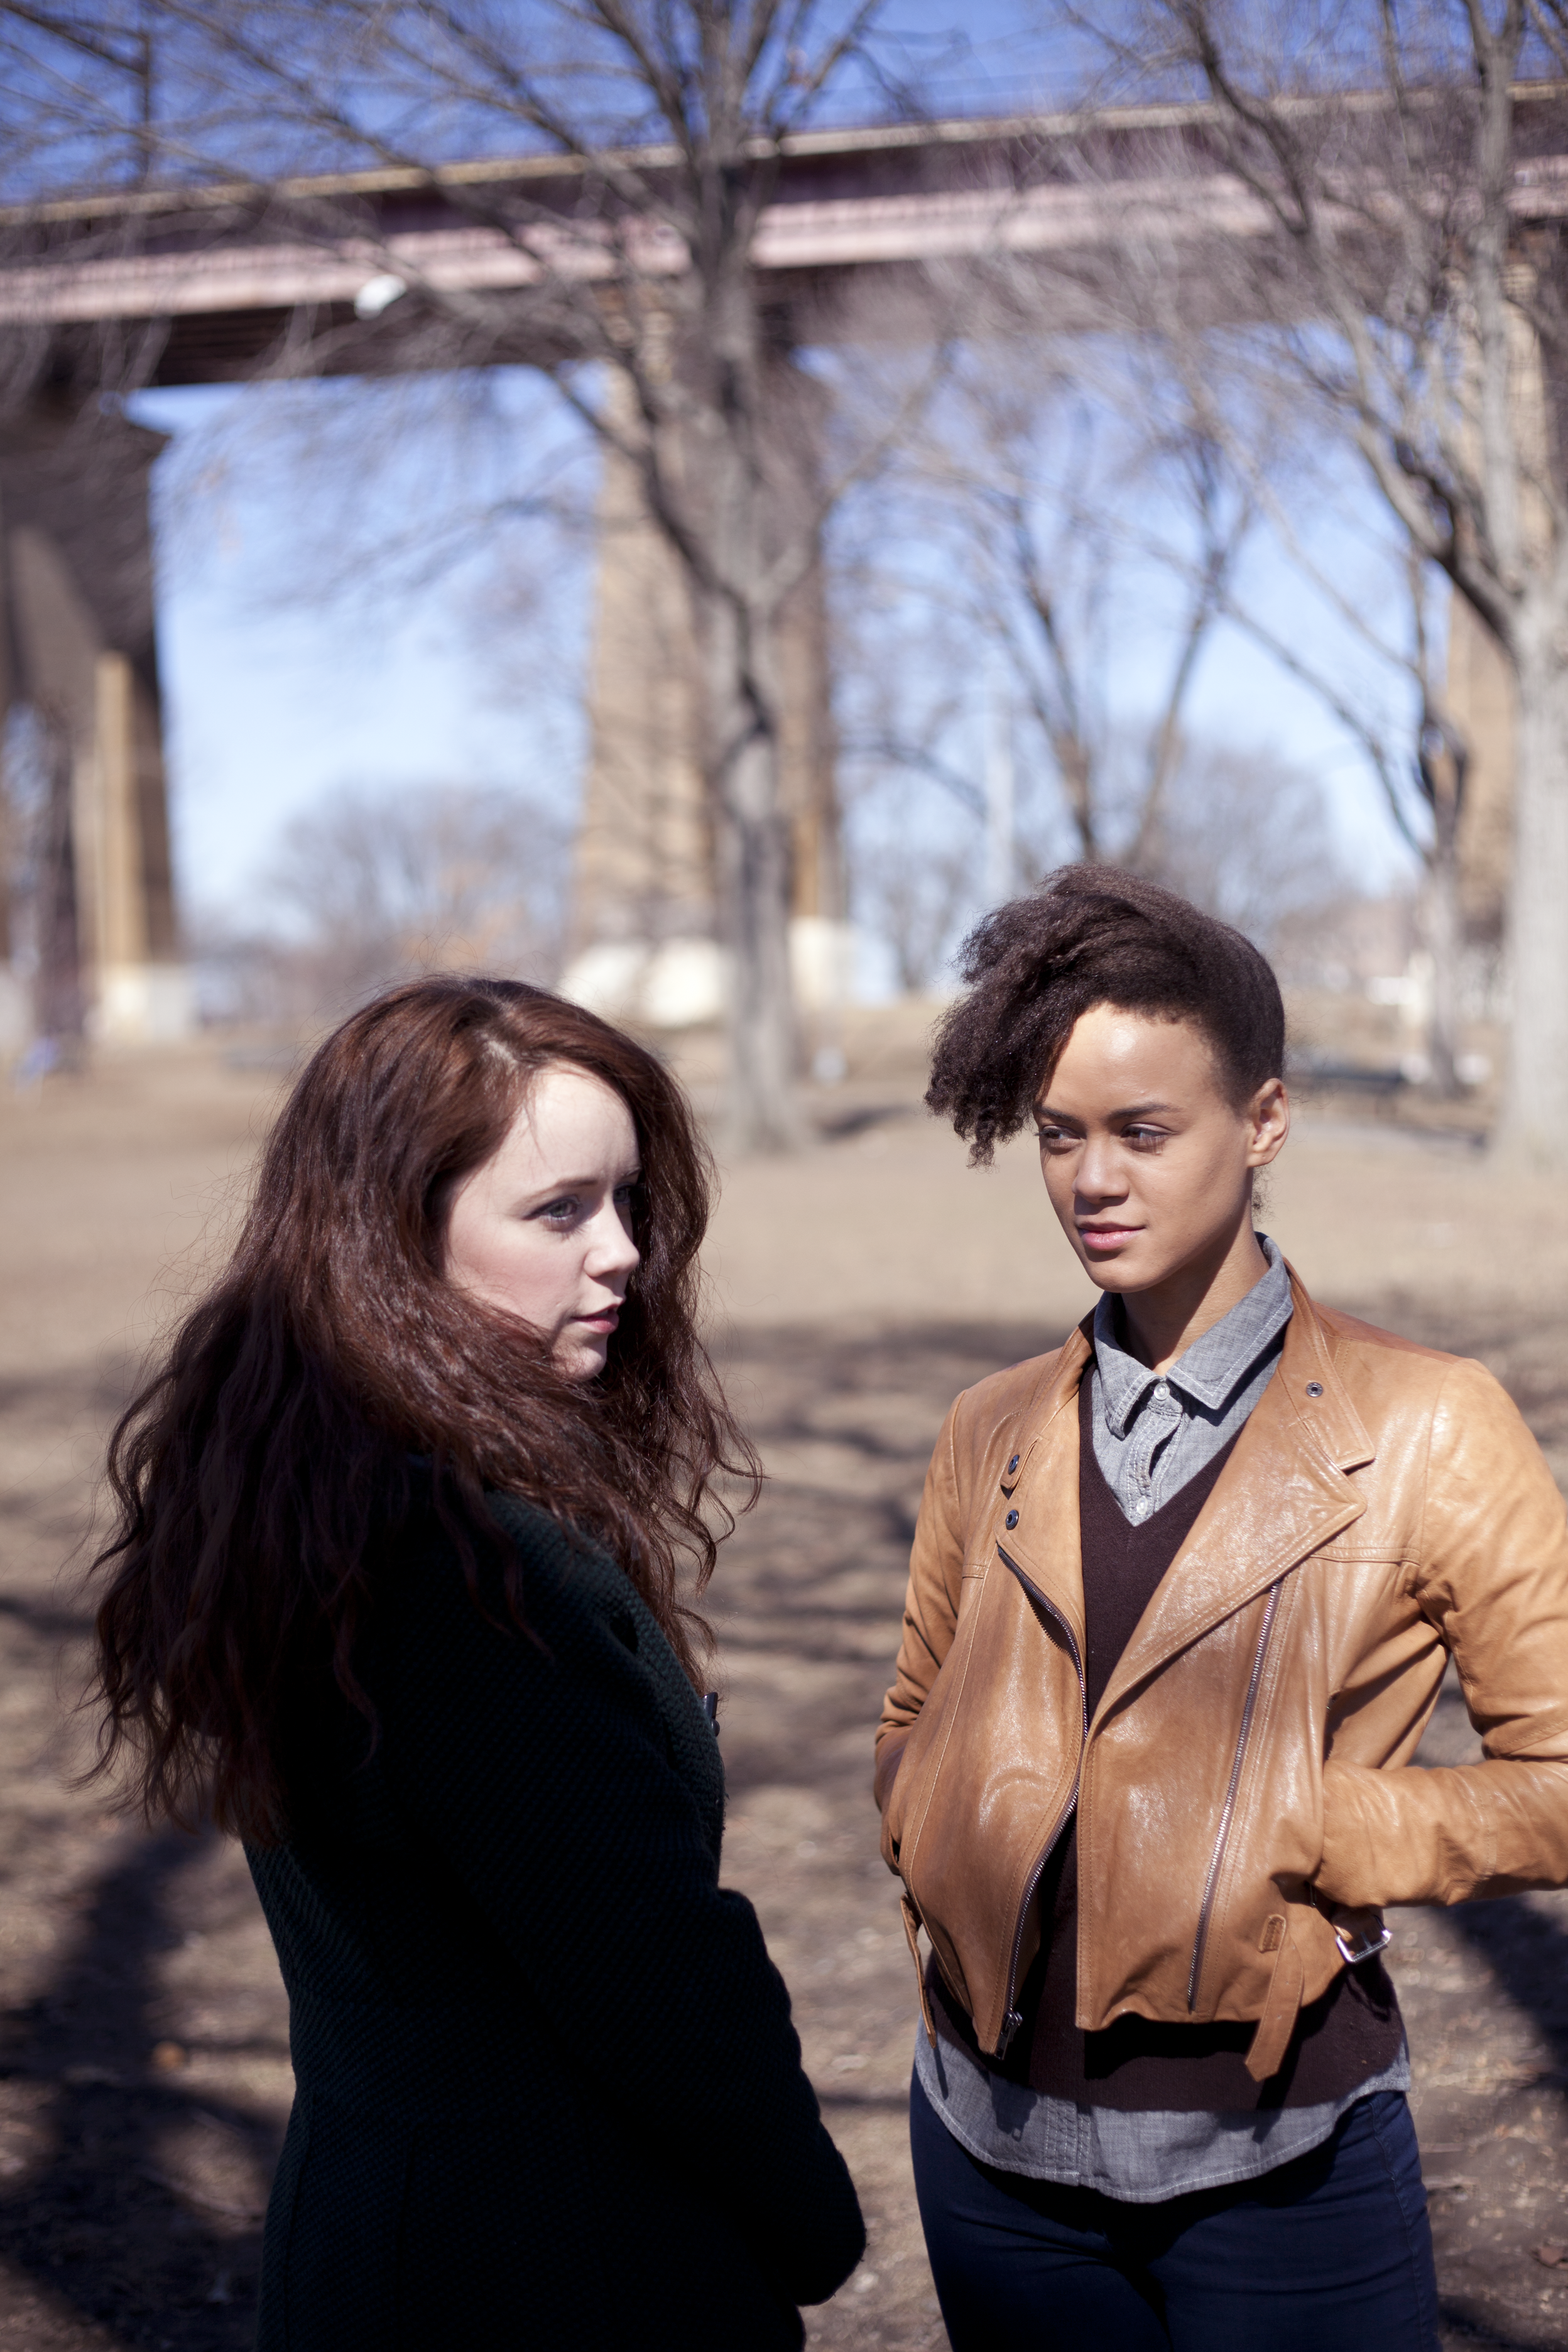 Promotional image for  May Violets Spring  featuring Gwenevere Sisco and Monique St. Cyr in Astoria Park.  Photographs by  Trish Phelps .